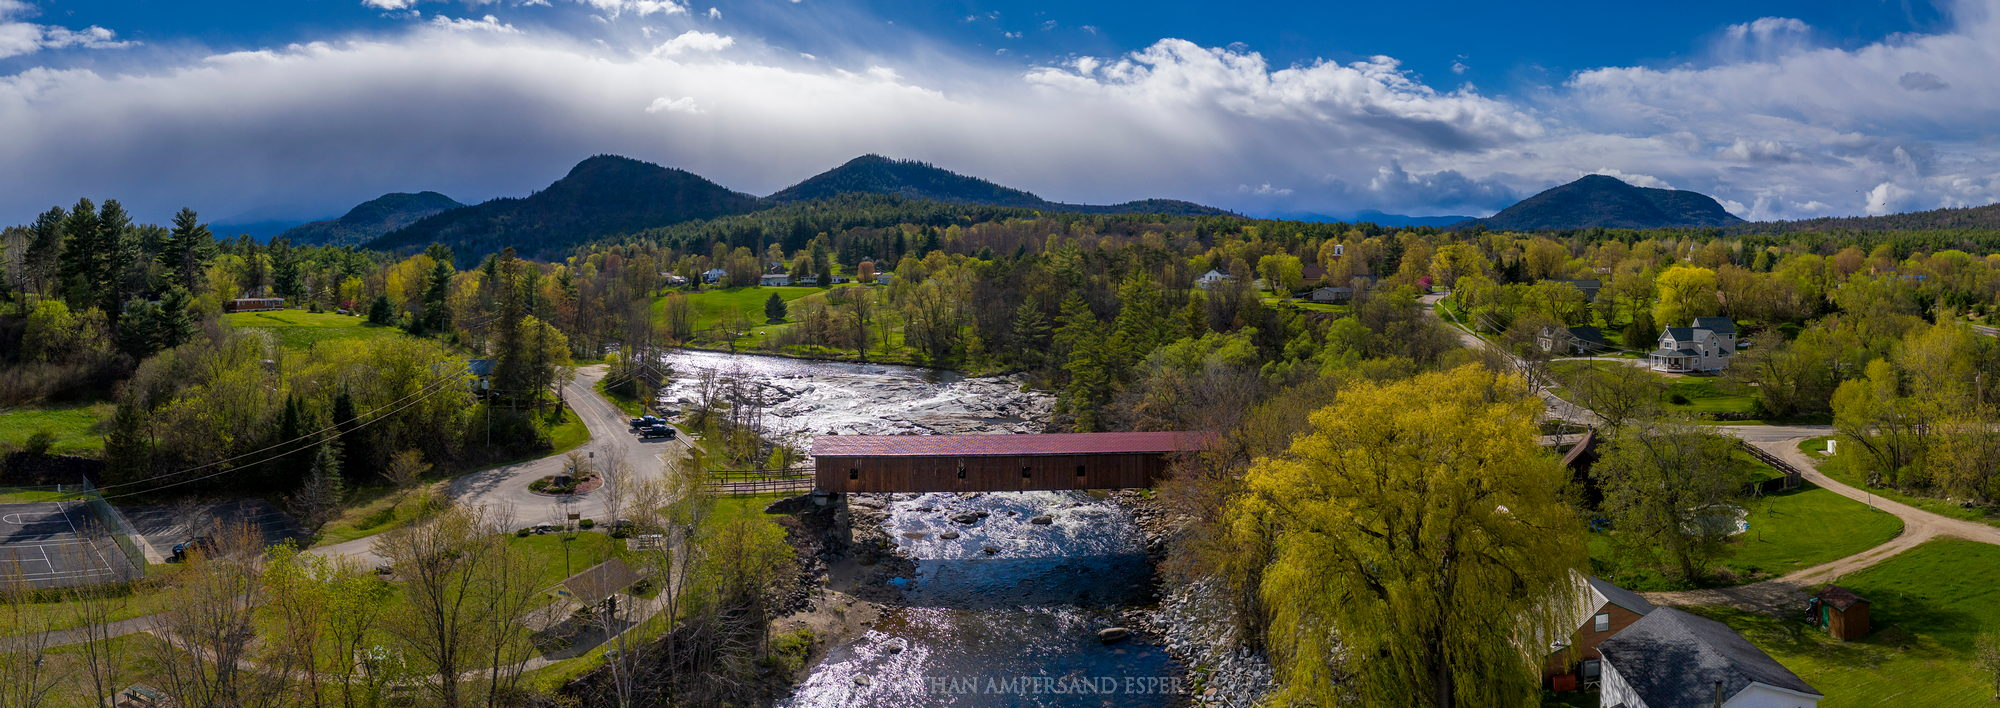 Jay,Jay town,town of Jay,Jay covered bridge,covered bridge,bridge,Ausable River,spring,May,2021,drone,town